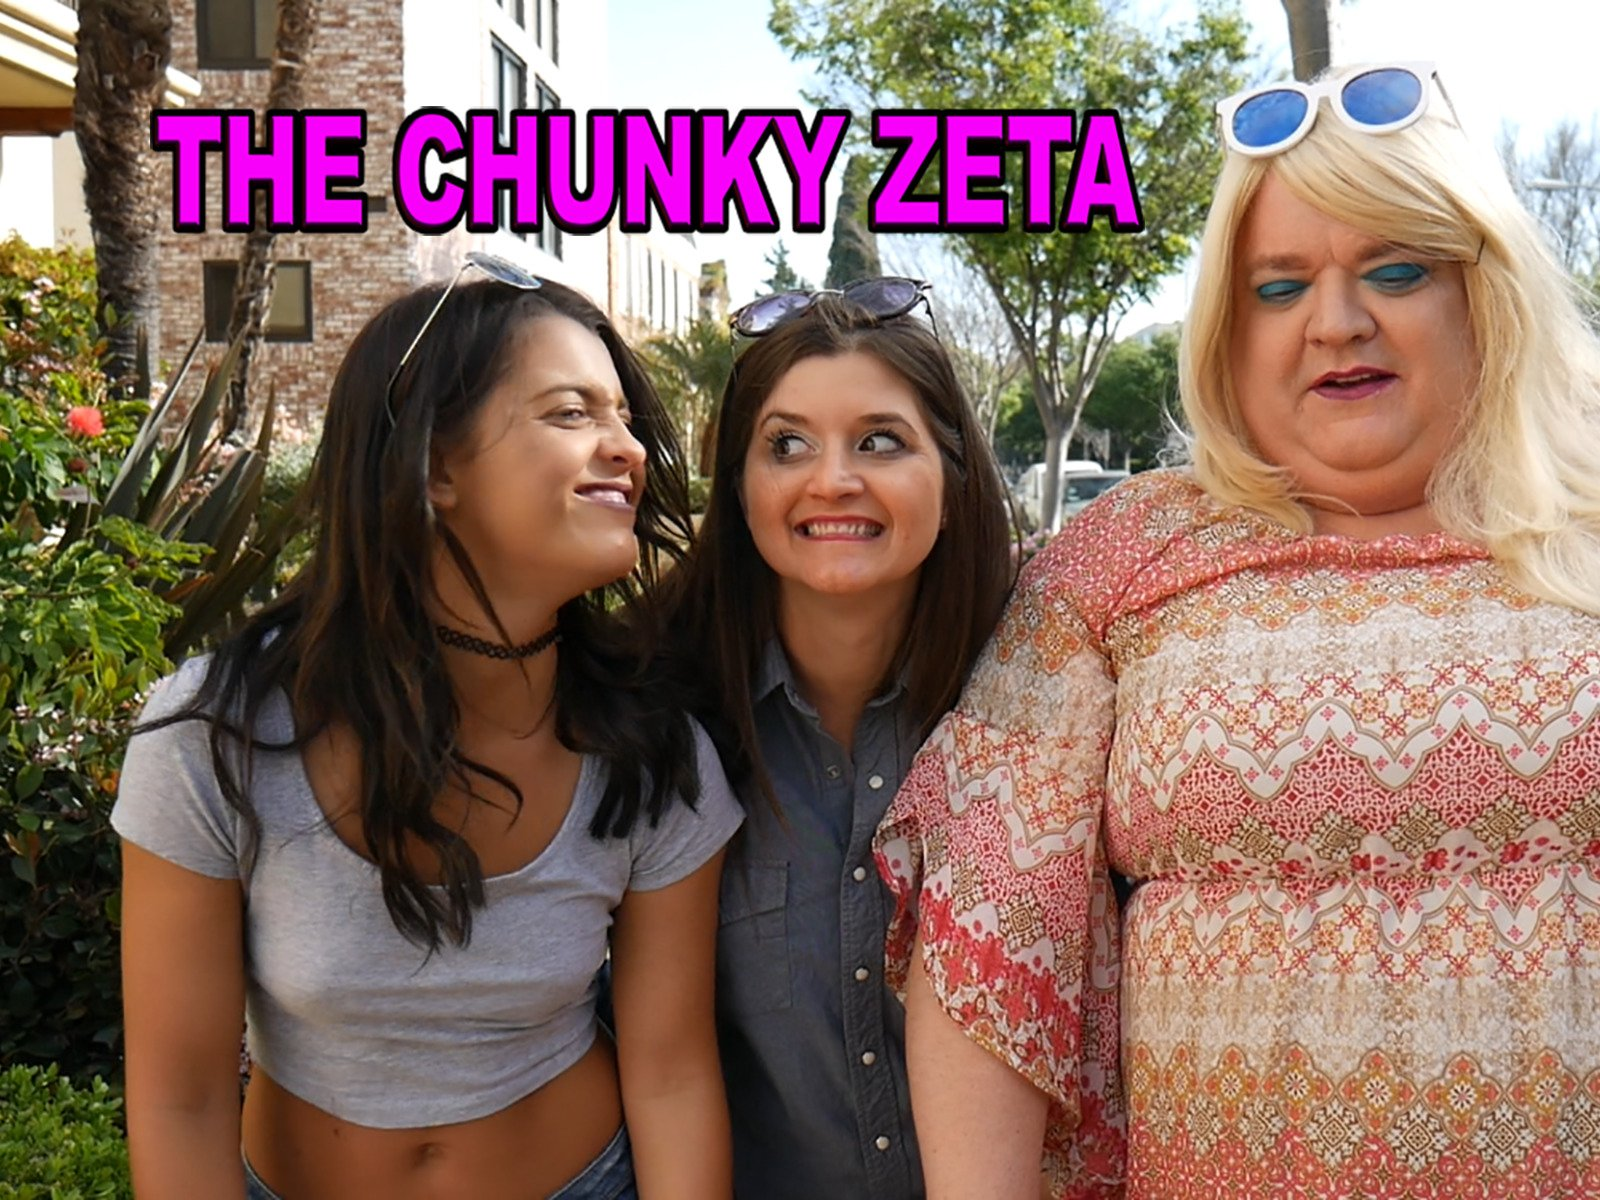 The Chunky Zeta